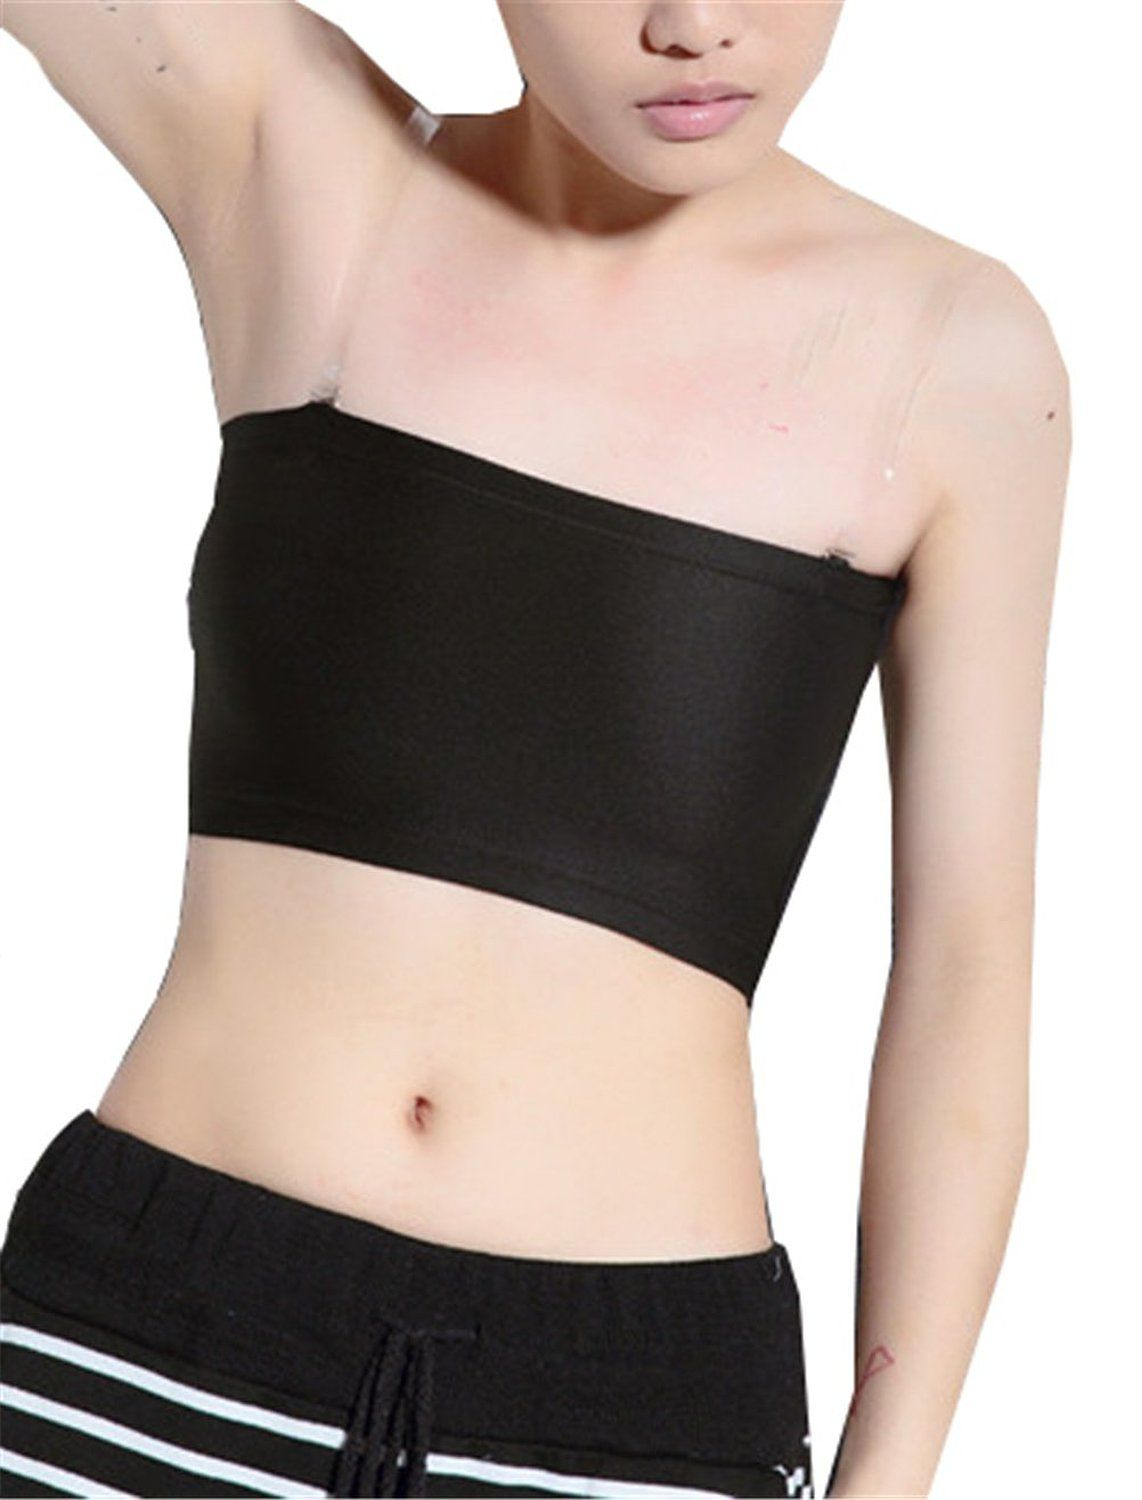 3 rows clasp super flat les lesbian compression tube top strapless